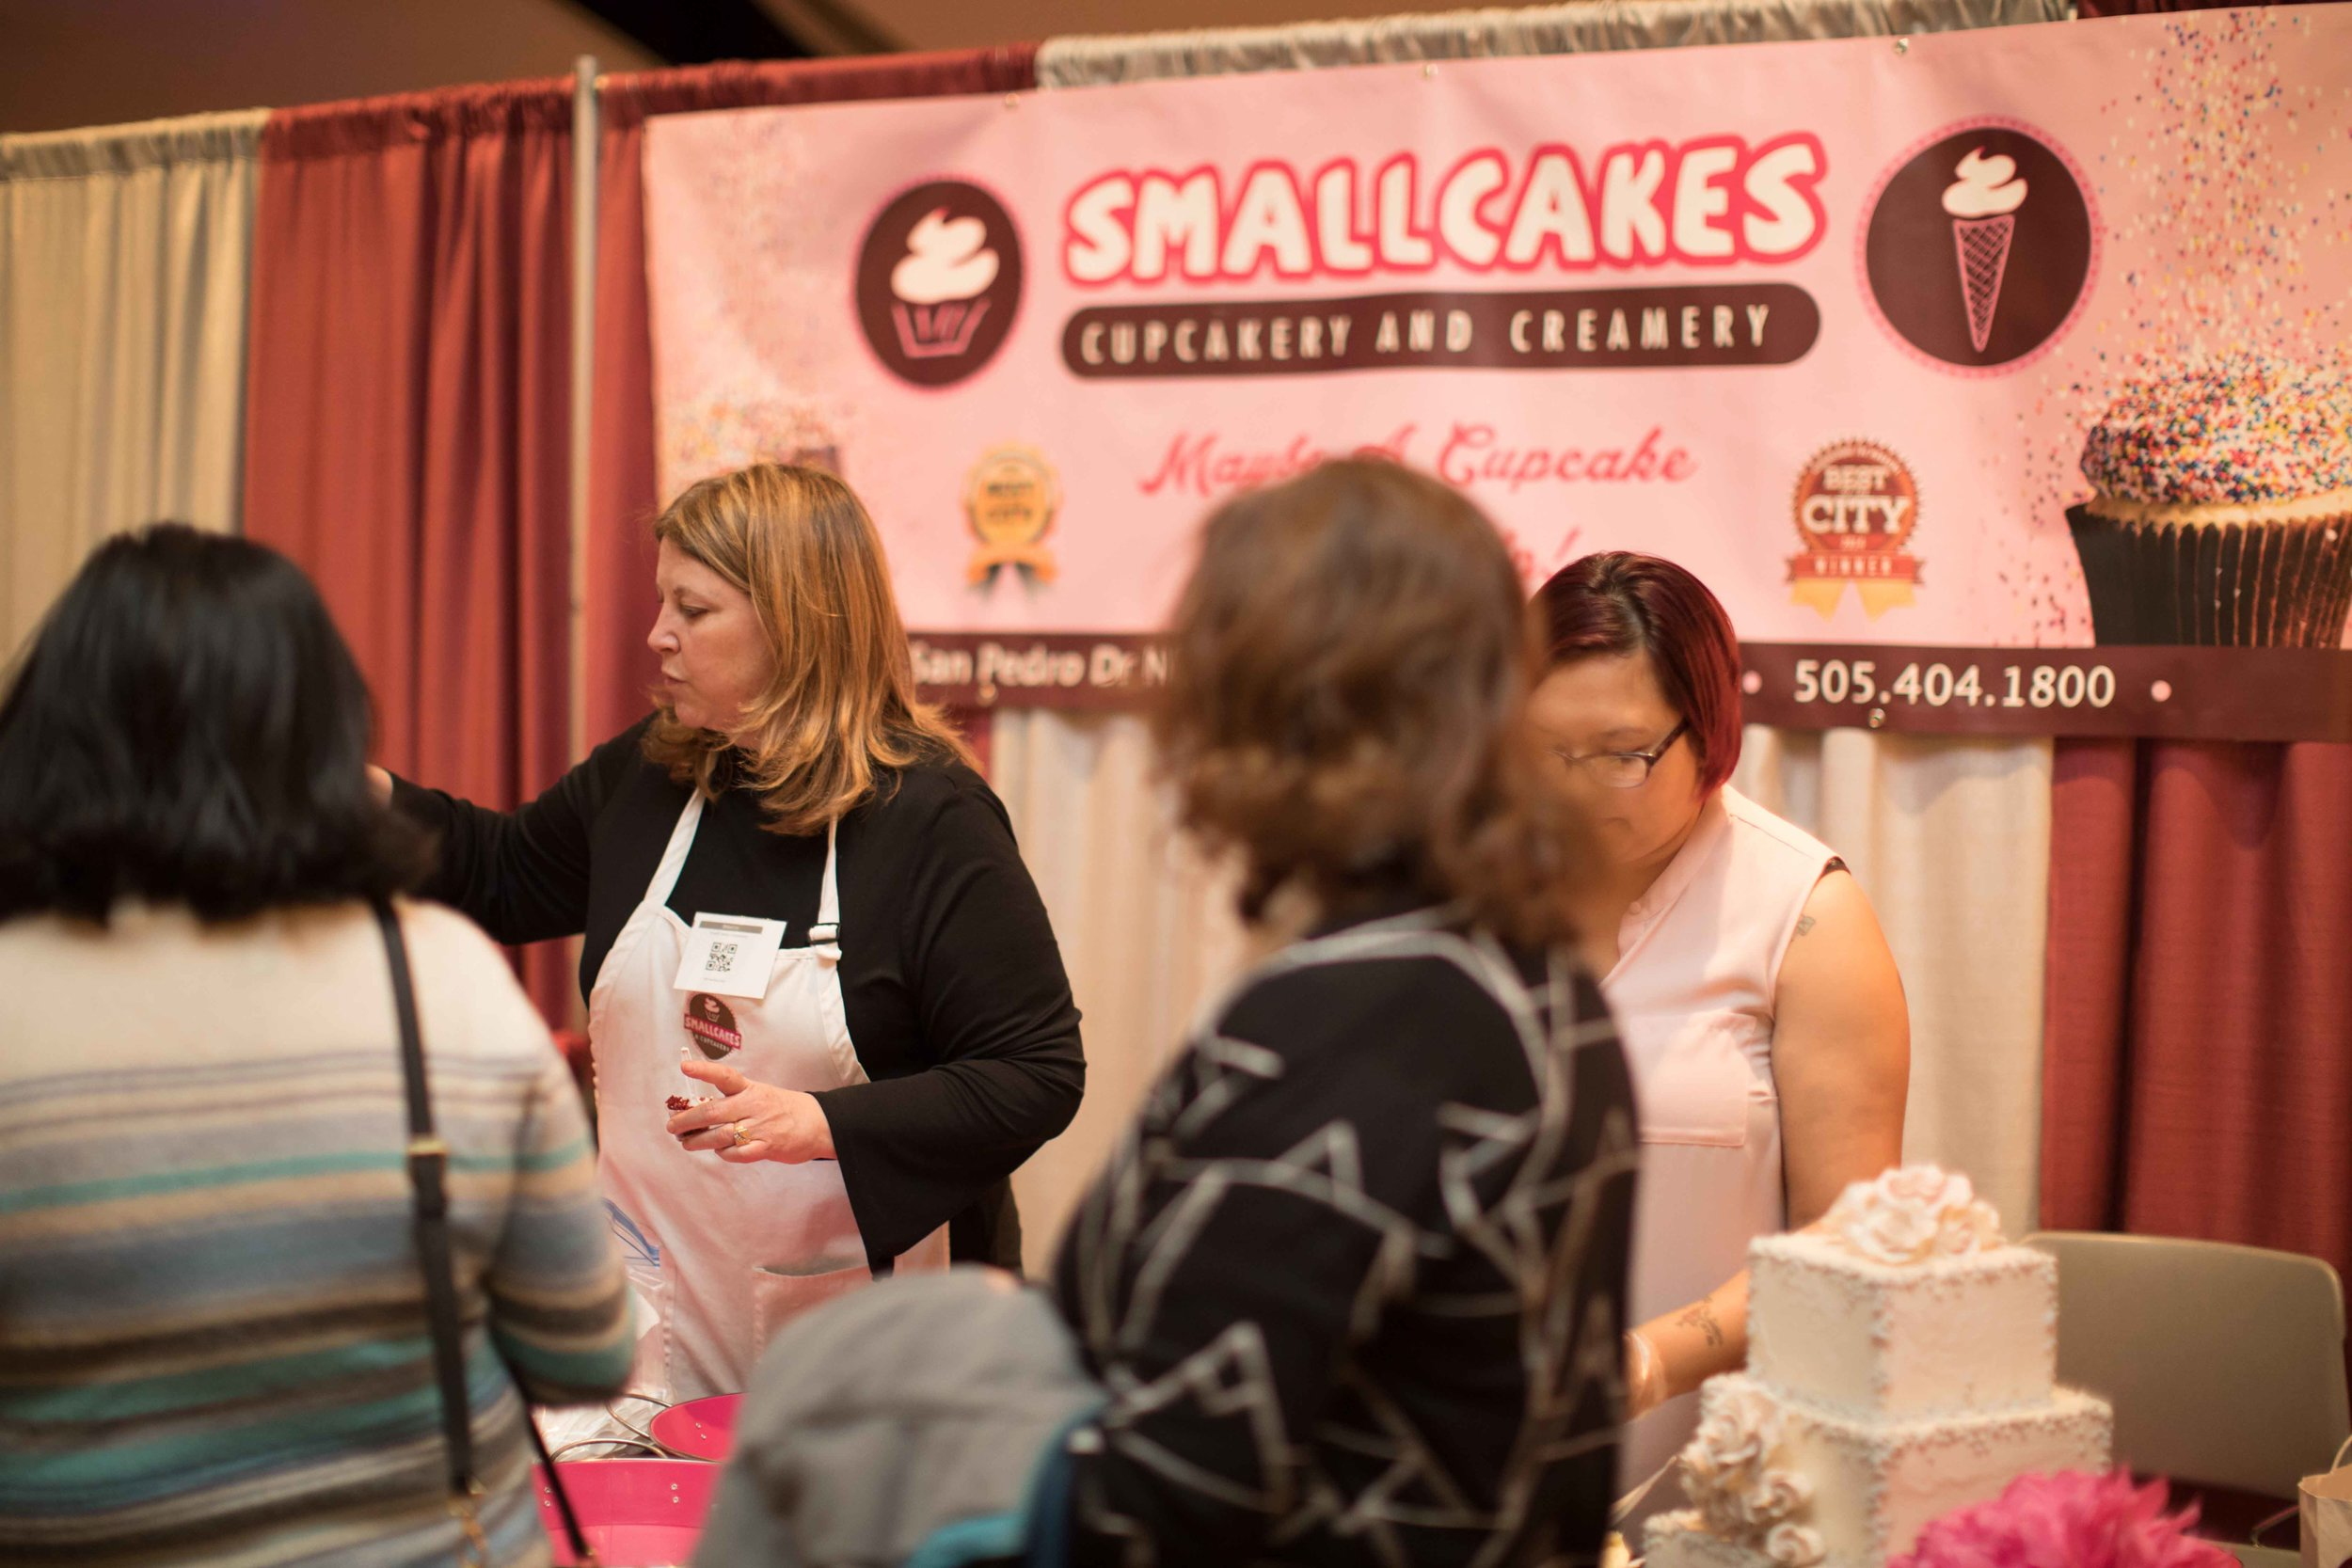 NM Wed Expo - Small Cakes cupcakes.jpg